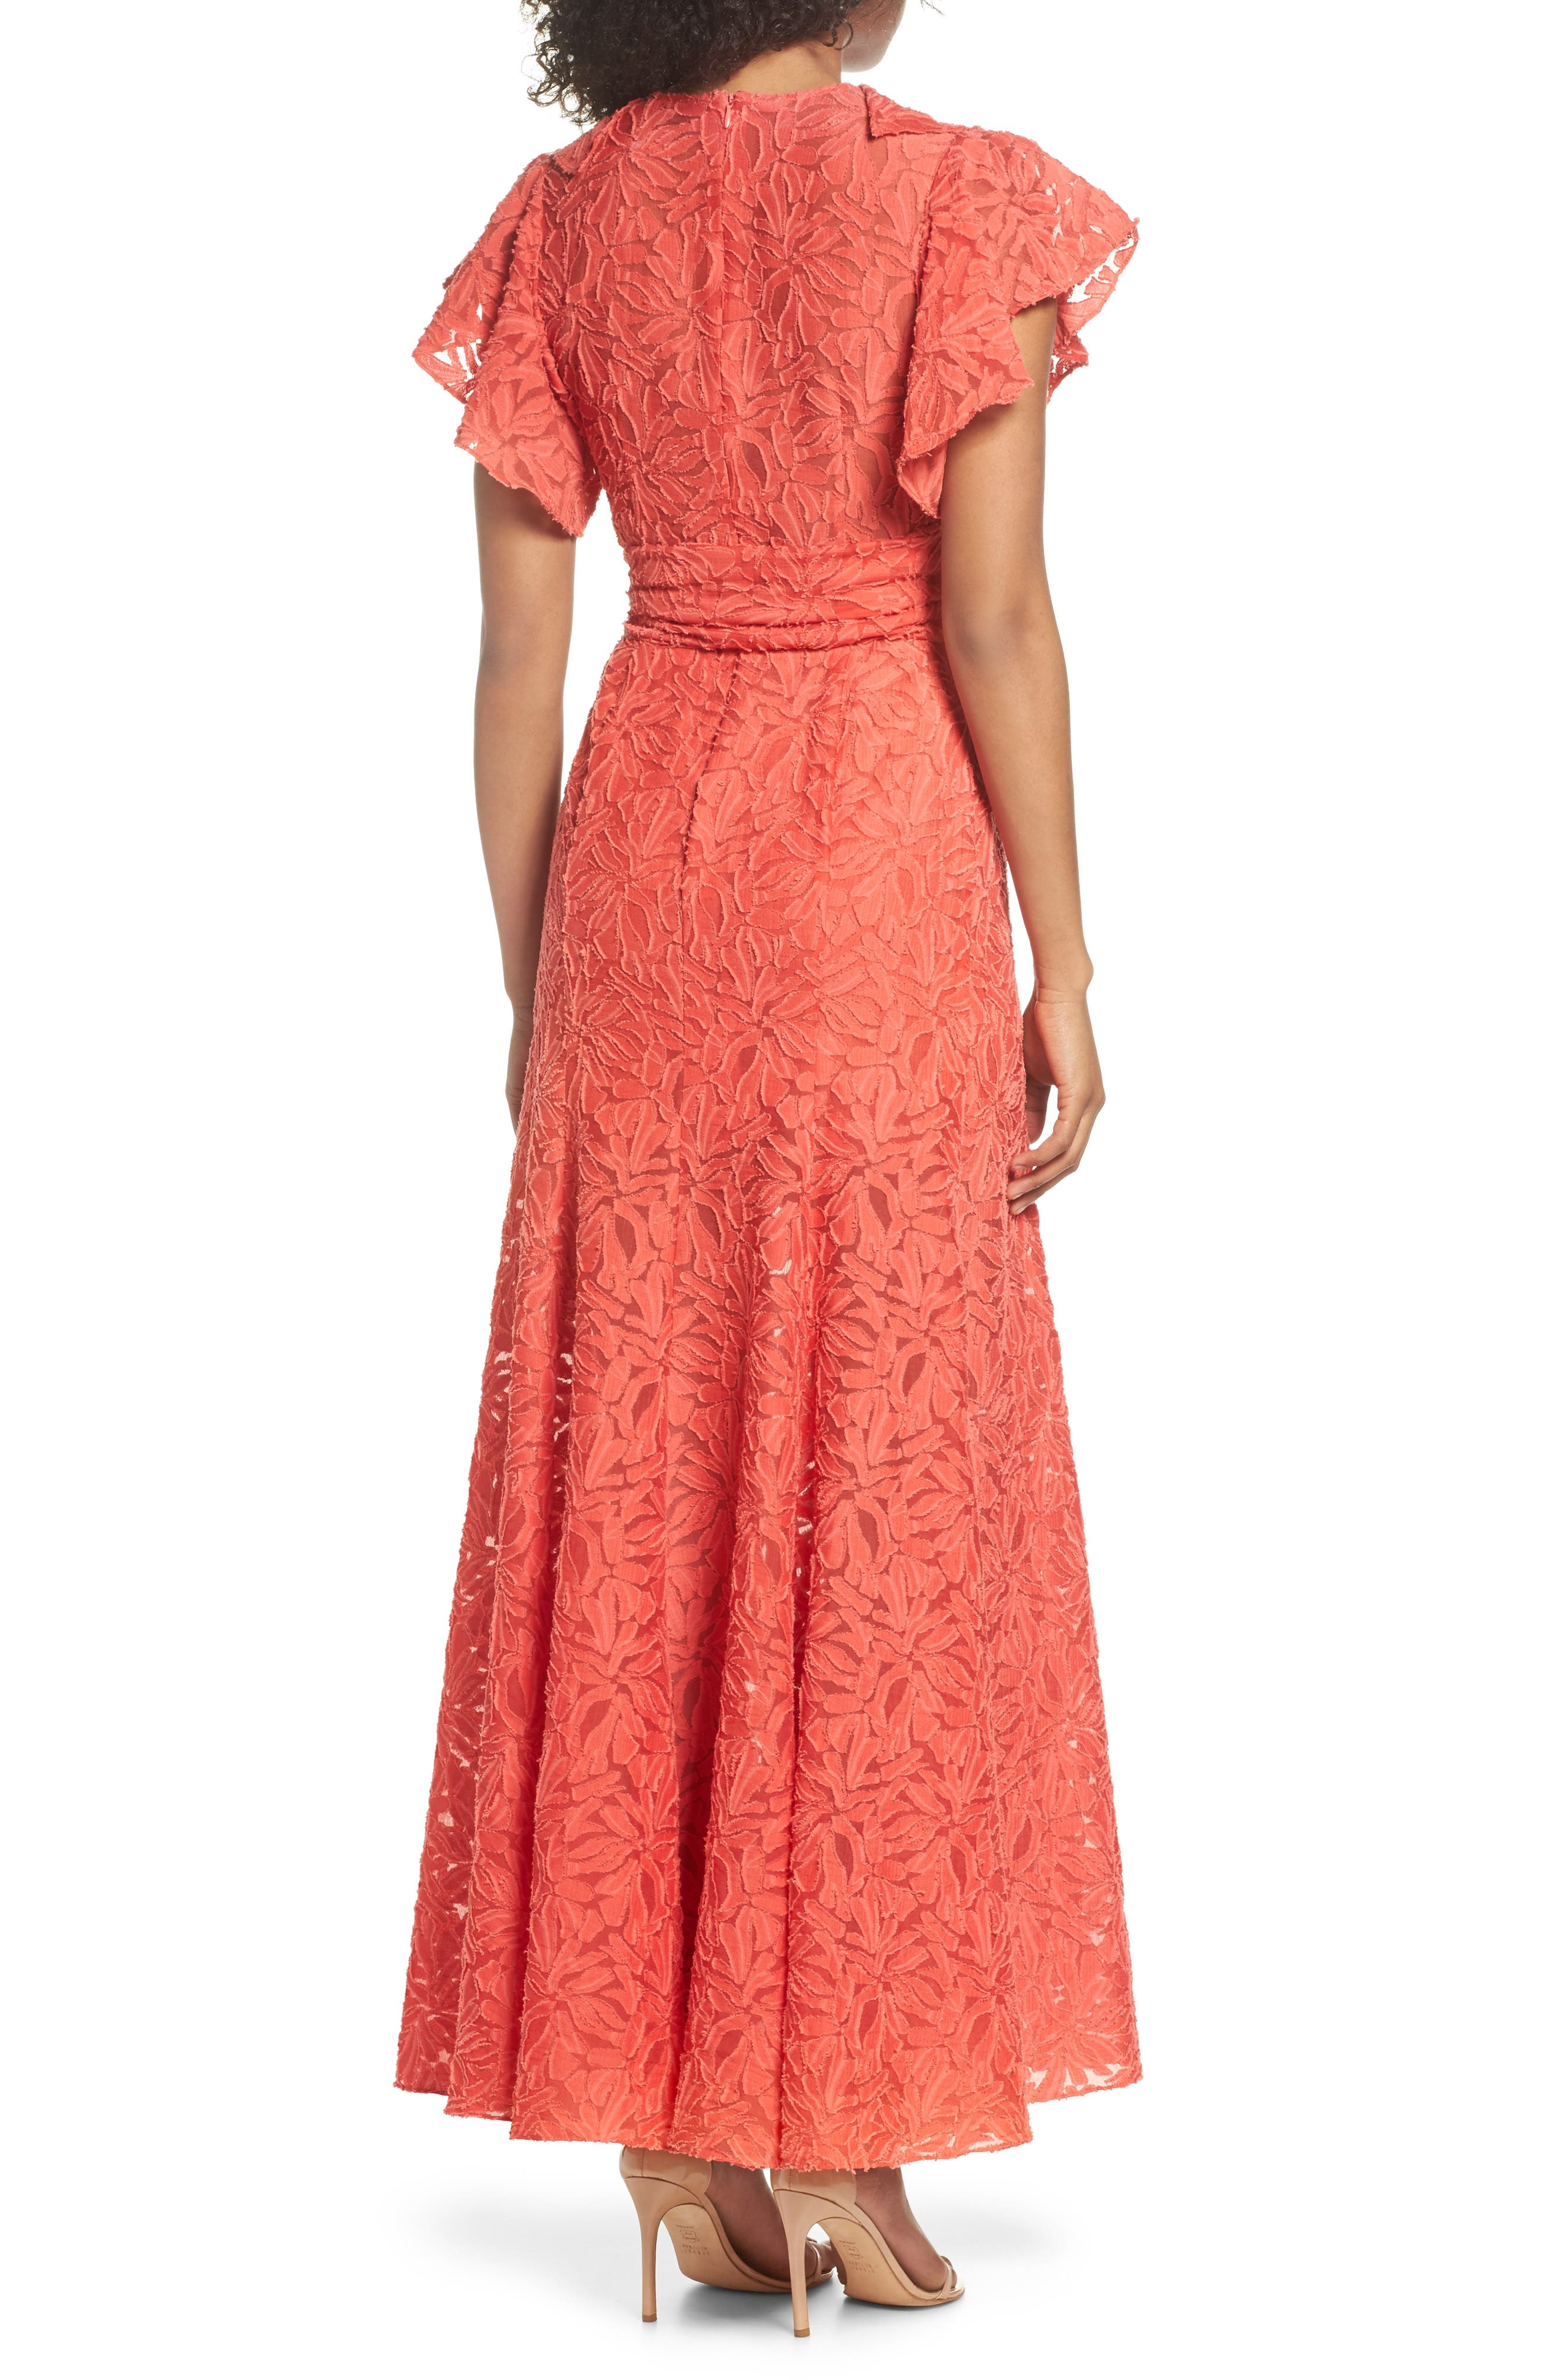 More To Give Ruffle Lace Gown,                             Alternate thumbnail 3, color,                             Melon